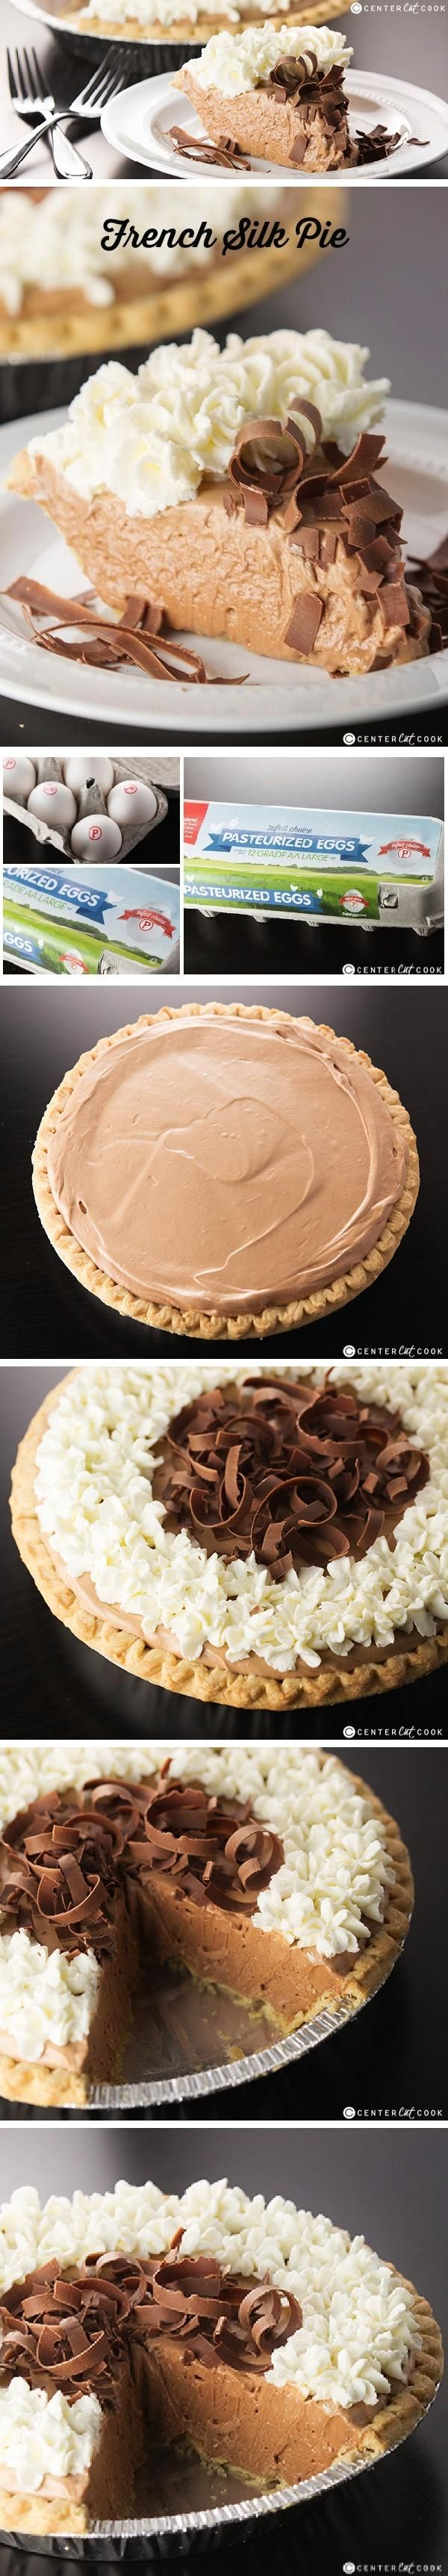 Chocolate lovers, this FRENCH SILK PIE is for you! This easy recipe for French Silk Pie with detailed step by step instructions will wow your friends and family. Chocolate French Silk Pie is the ultimate decadent silky smooth dessert!